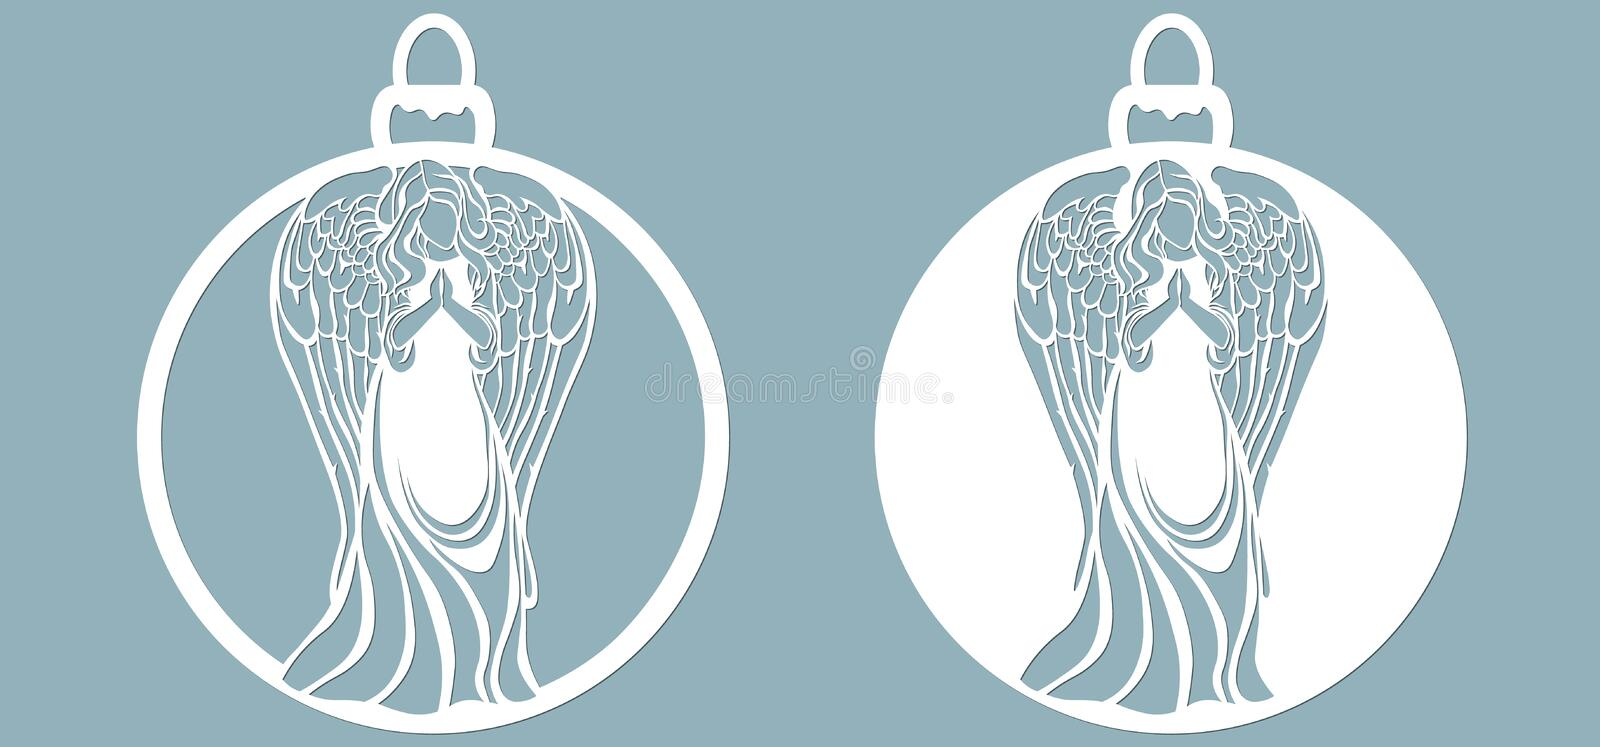 Icon in the form of Christmas toys, angel template,. Template for laser cutting and plotter vector illustration